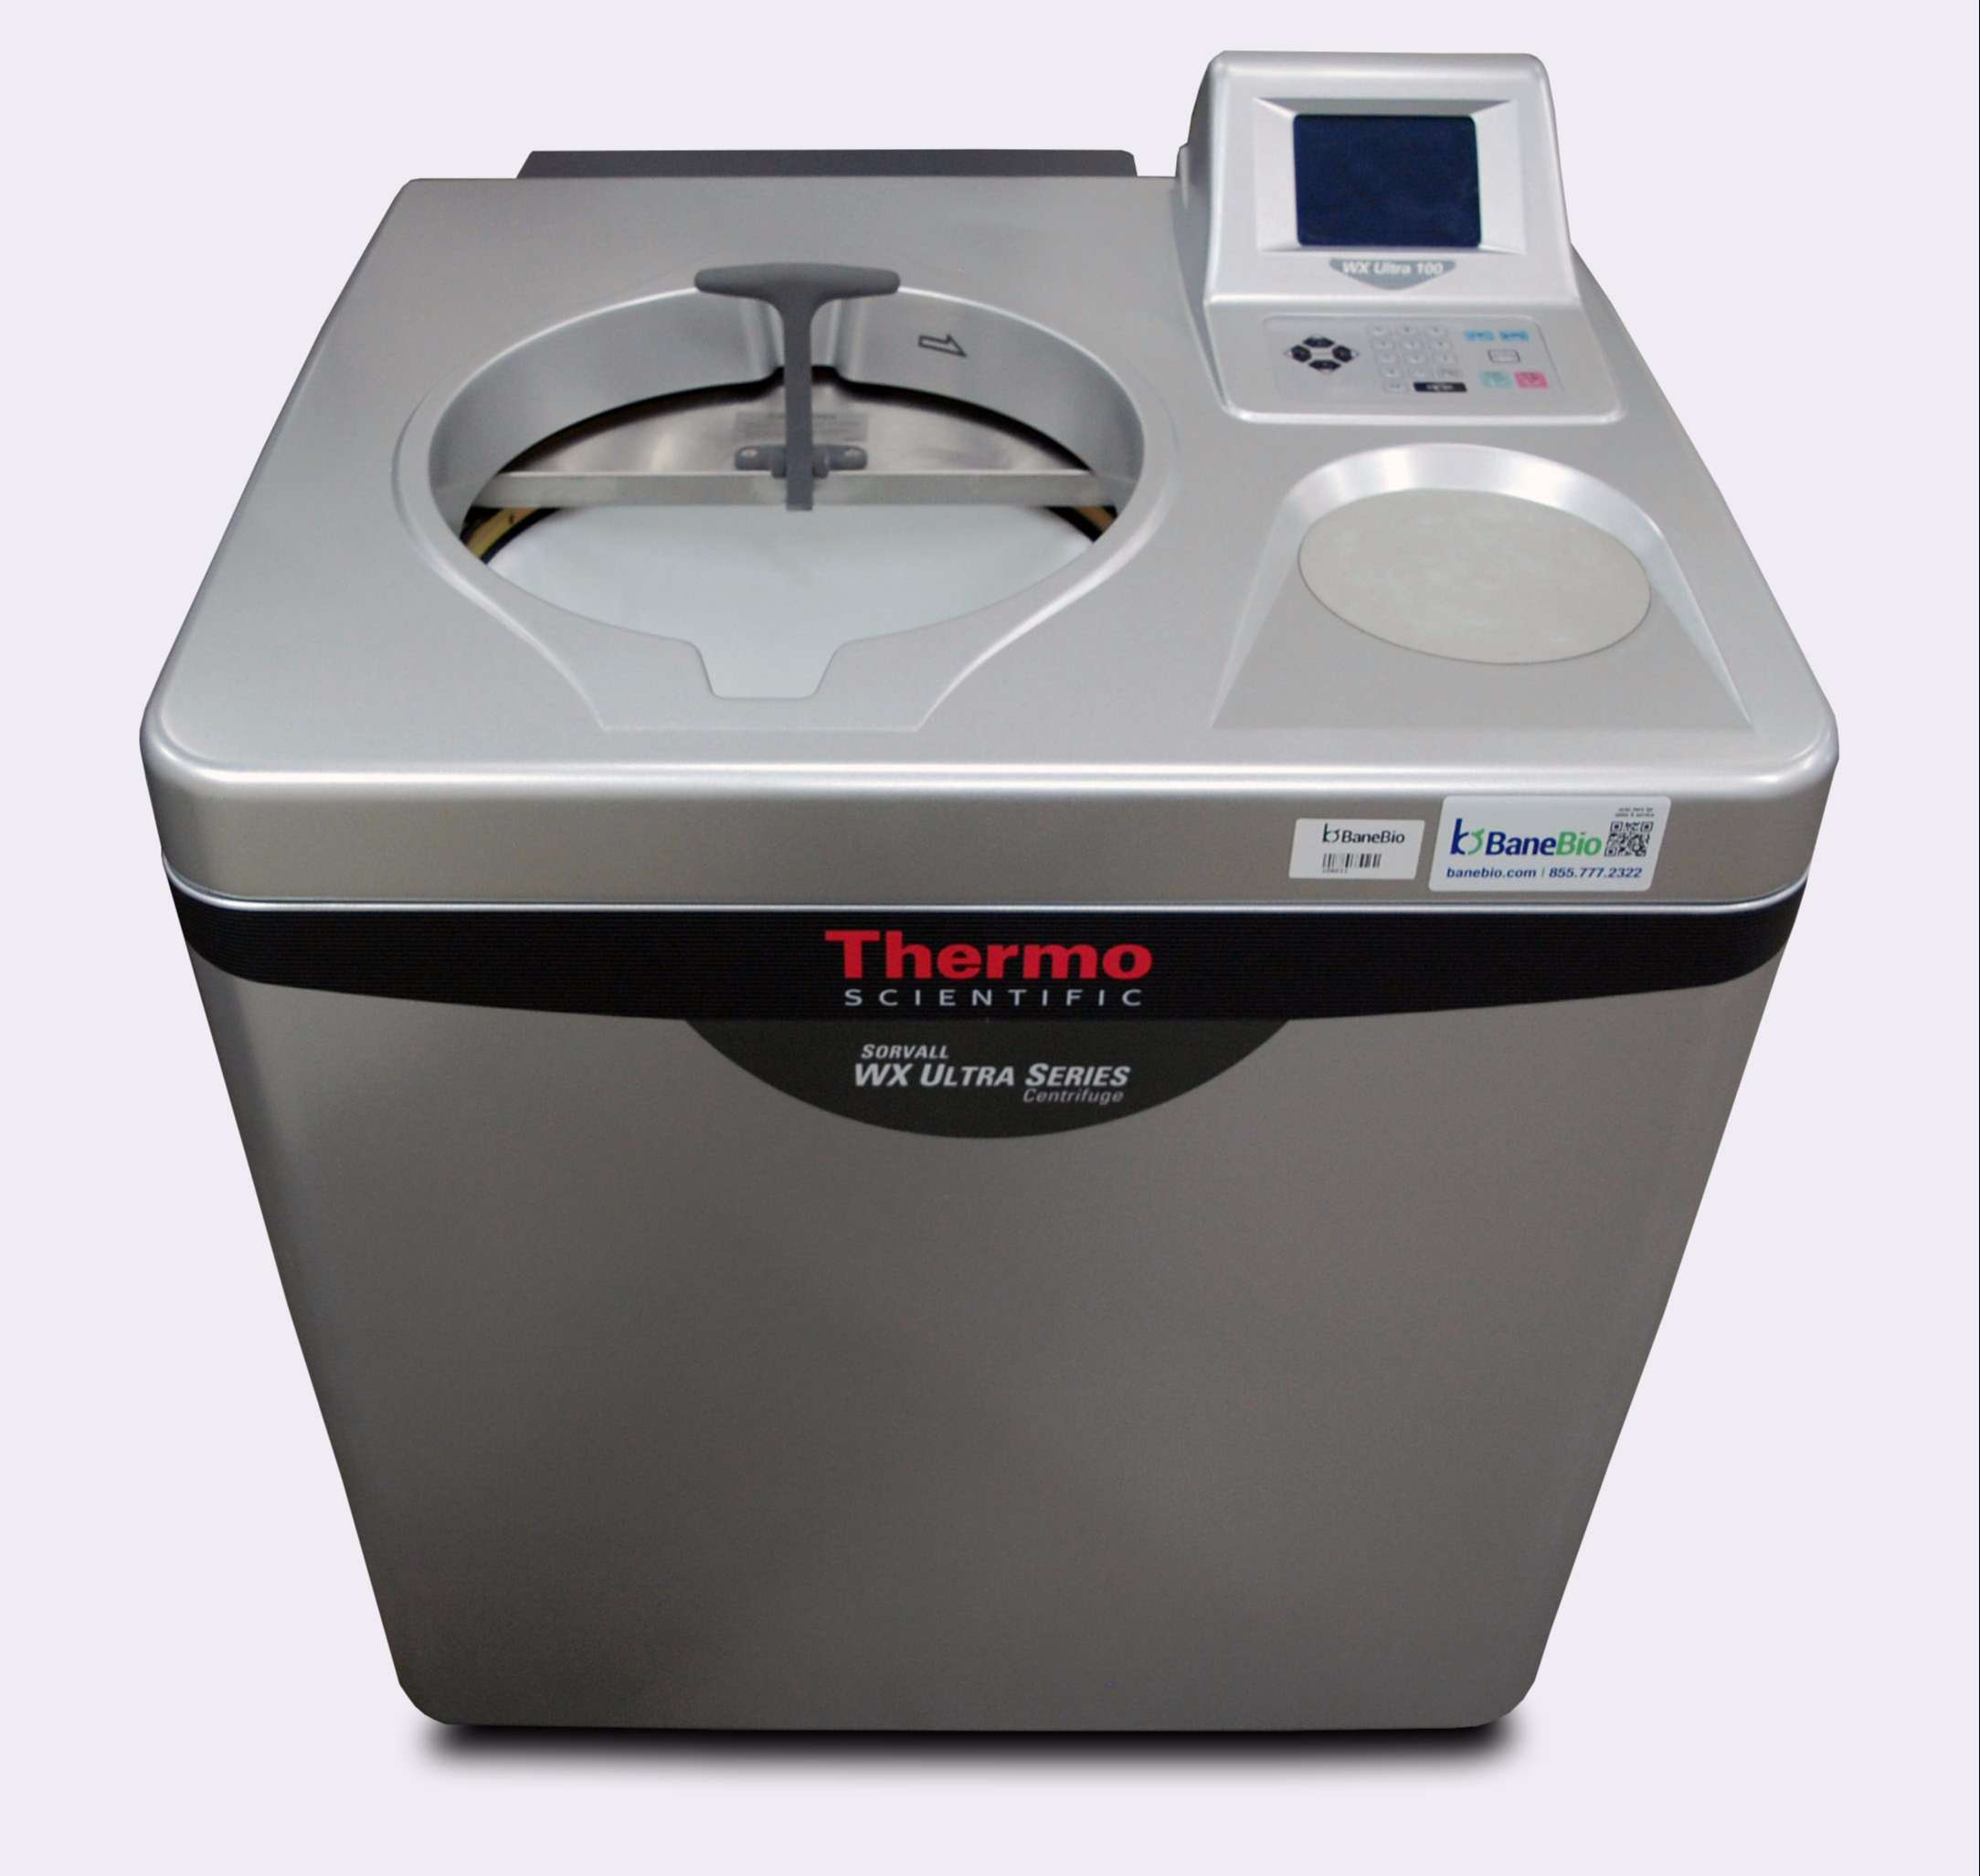 Thermo Scientific Sorvall Ultra Centrifuge WX Ultra 100